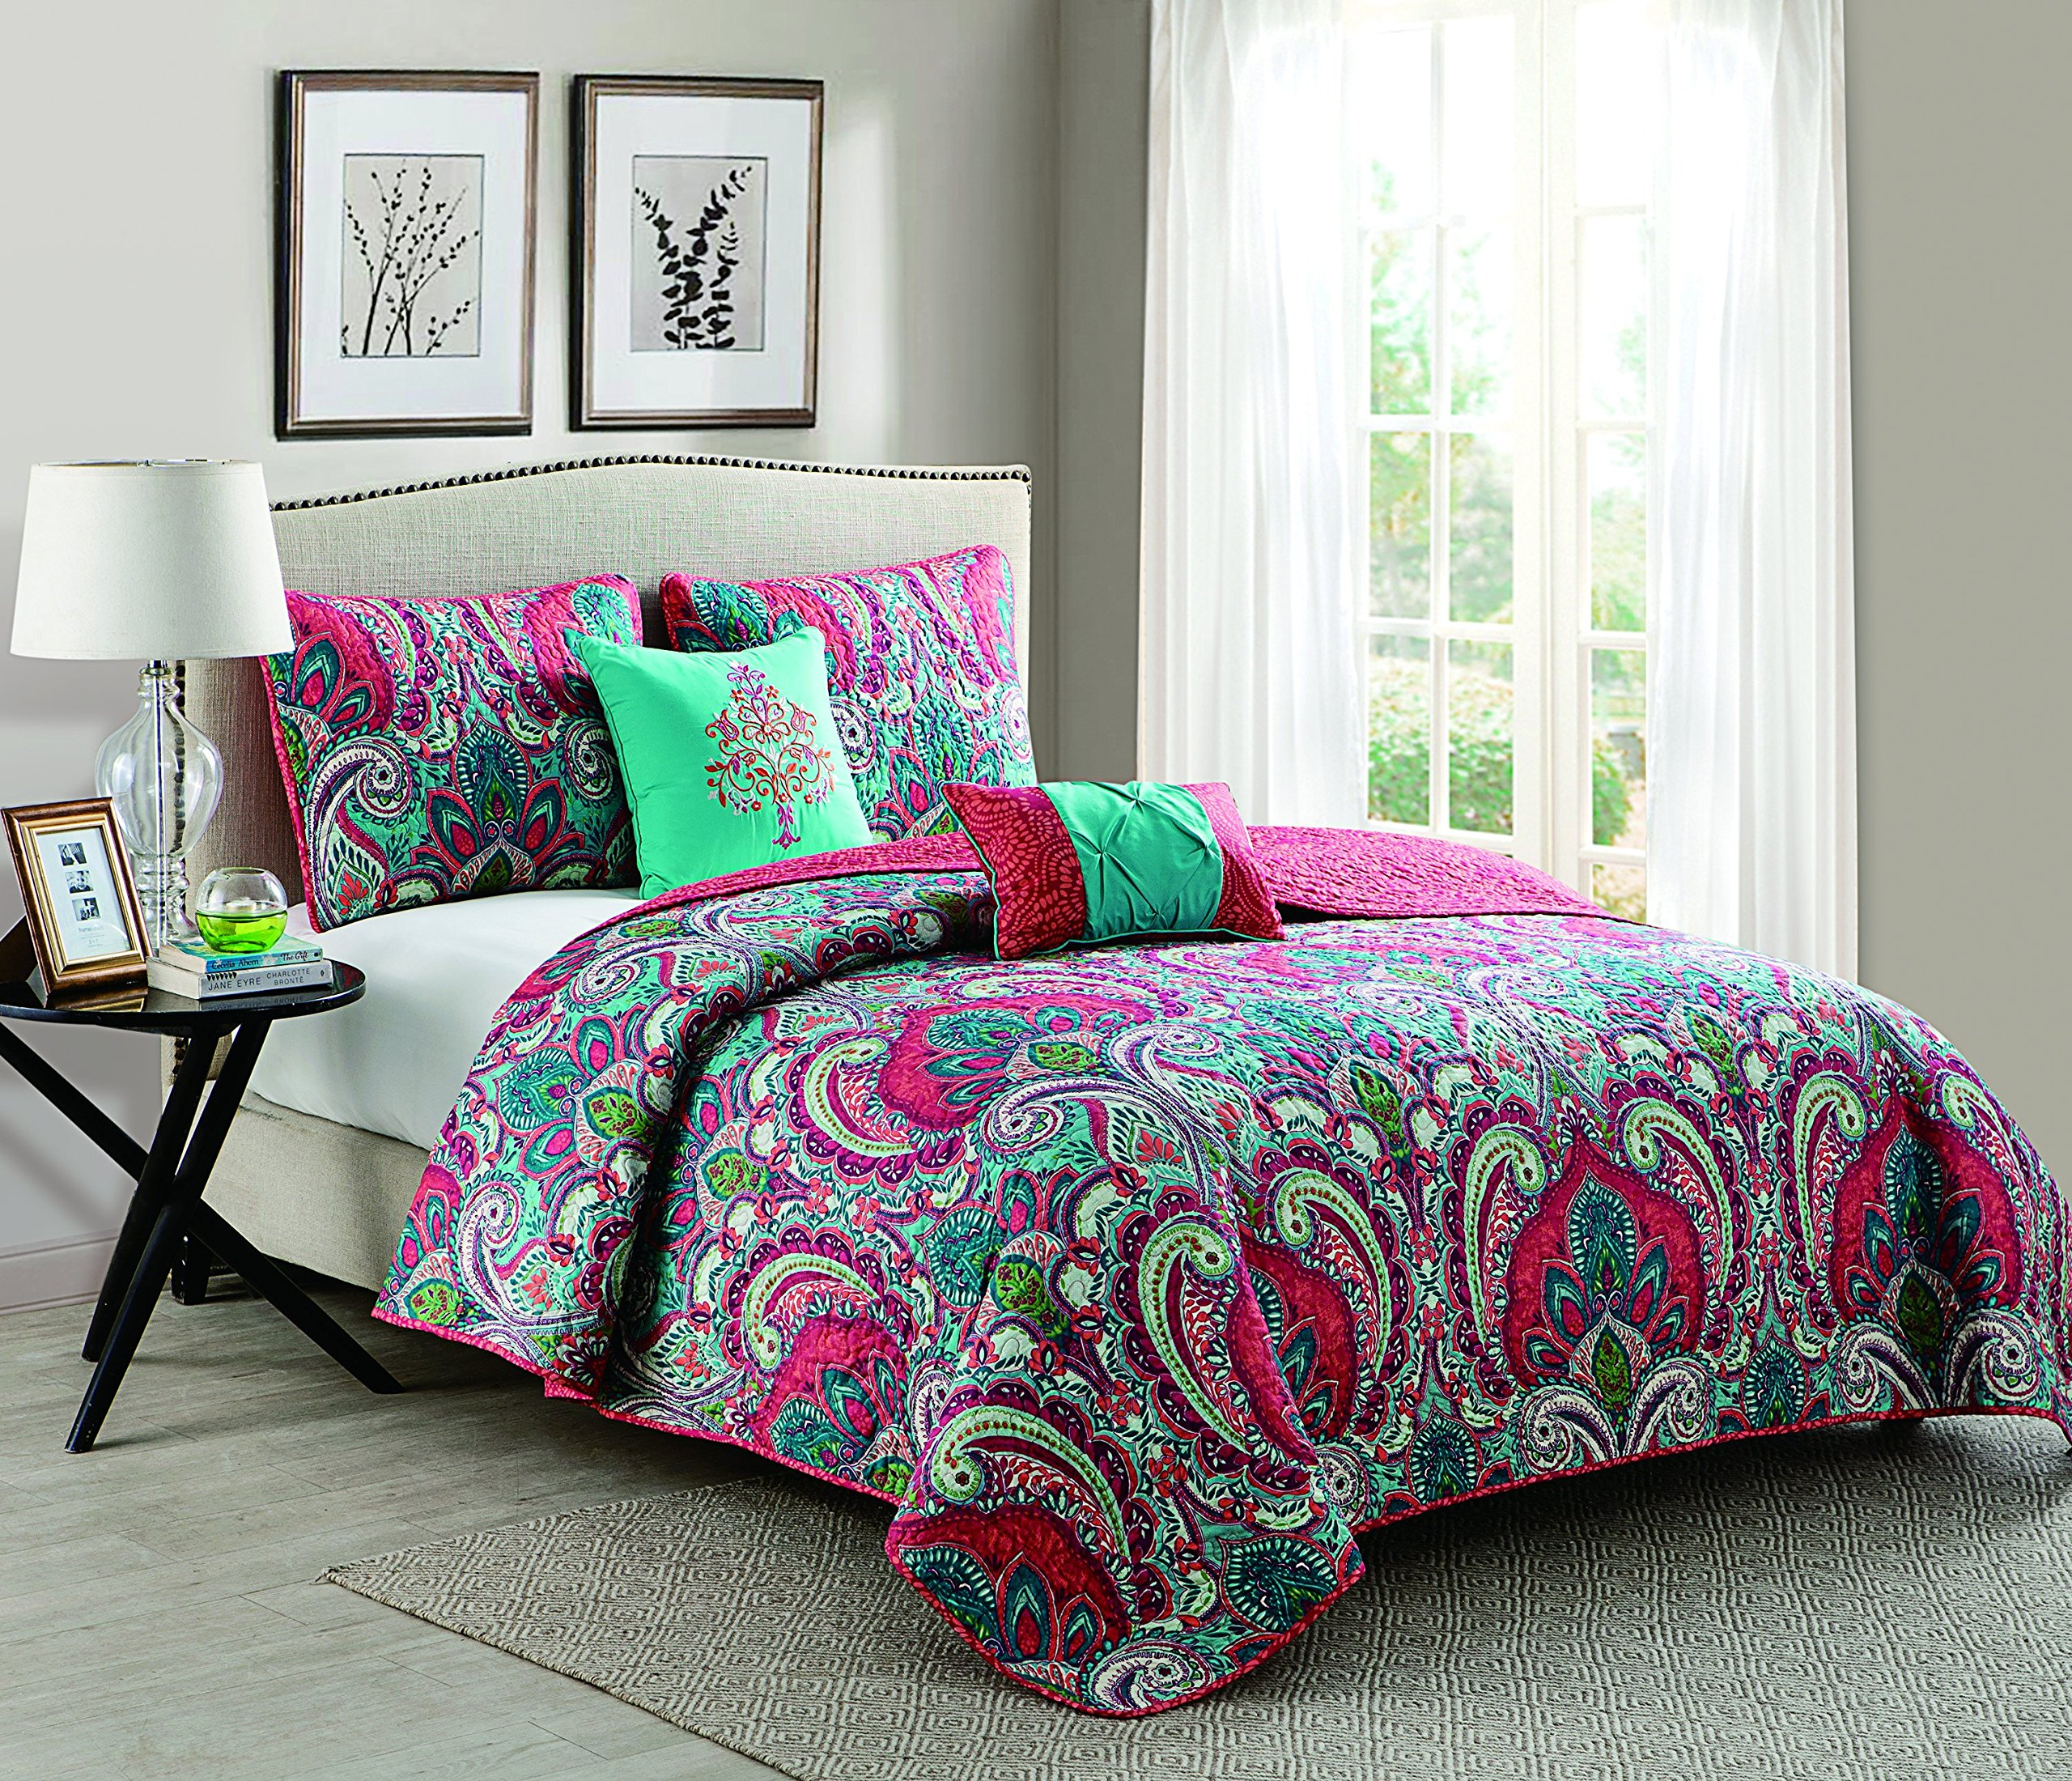 VCNY Home King Size Quilt Set in Multicolor Bohemian Style Paisley 5 Pc Set w/Decorative Pillows by VCNY Home (Image #1)